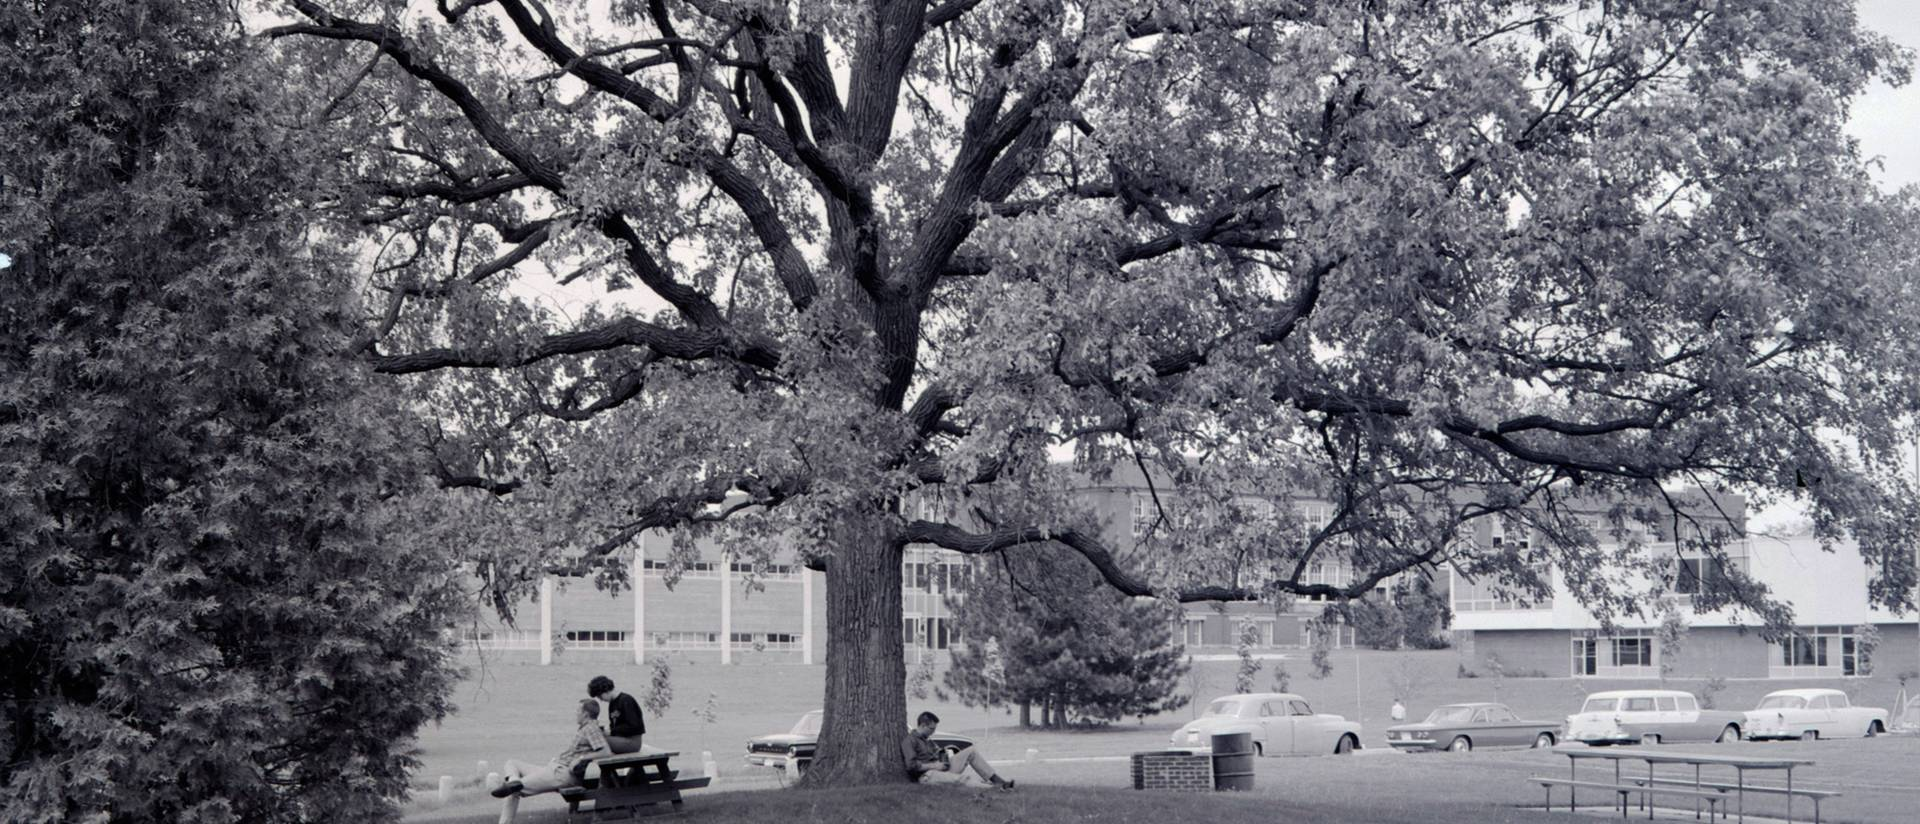 Council Oak tree at UW-Eau Claire